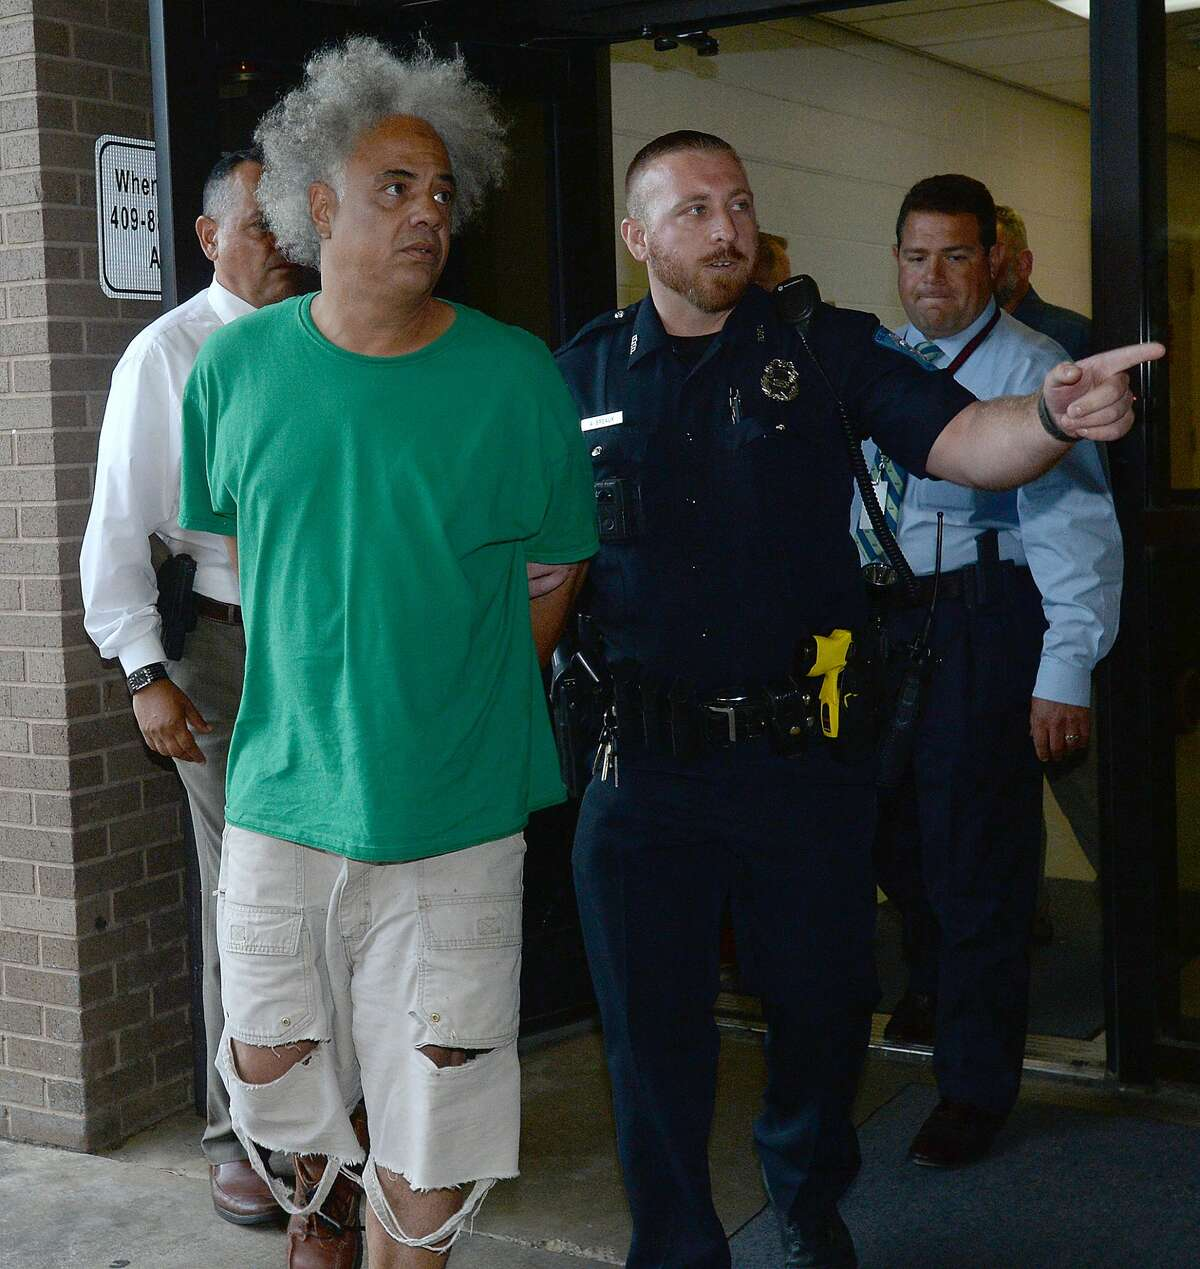 Ronald Goeloe, 51, of Beaumont is led out of the Beaumont Police Department Friday after being arrested and charged with murder in the death of Joyce Marie Acey, 49, of Beaumont. Acey's body was found dead in a garage apartment on Evalon Avenue Thursday night. Photo taken Friday, July 19, 2019 Kim Brent/The Enterprise